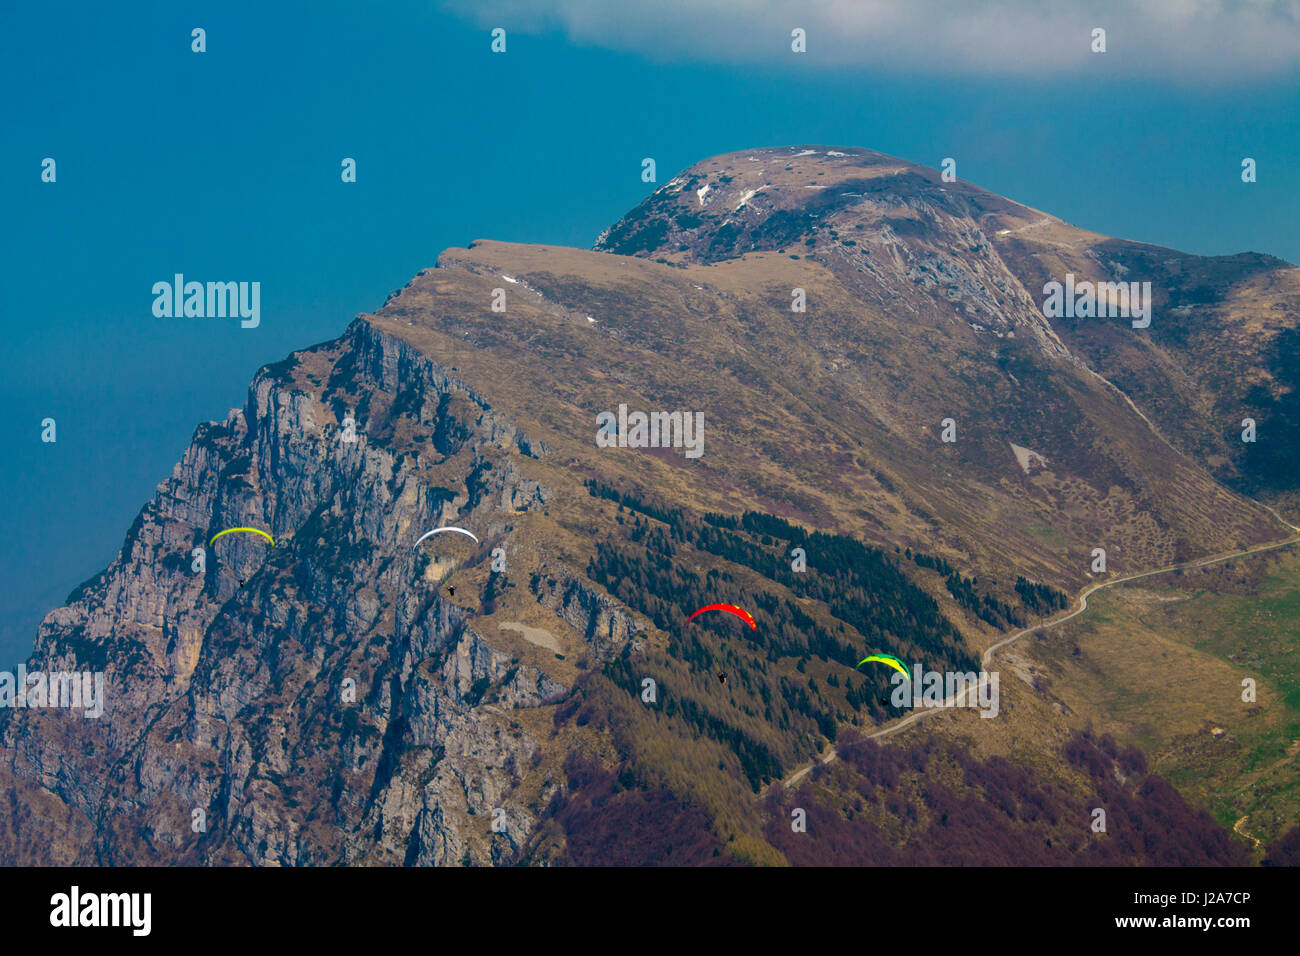 Wingsuit, Mount Baldo, Veneto Italy,Skydiver in flight against the backdrop of the mountain - Stock Image